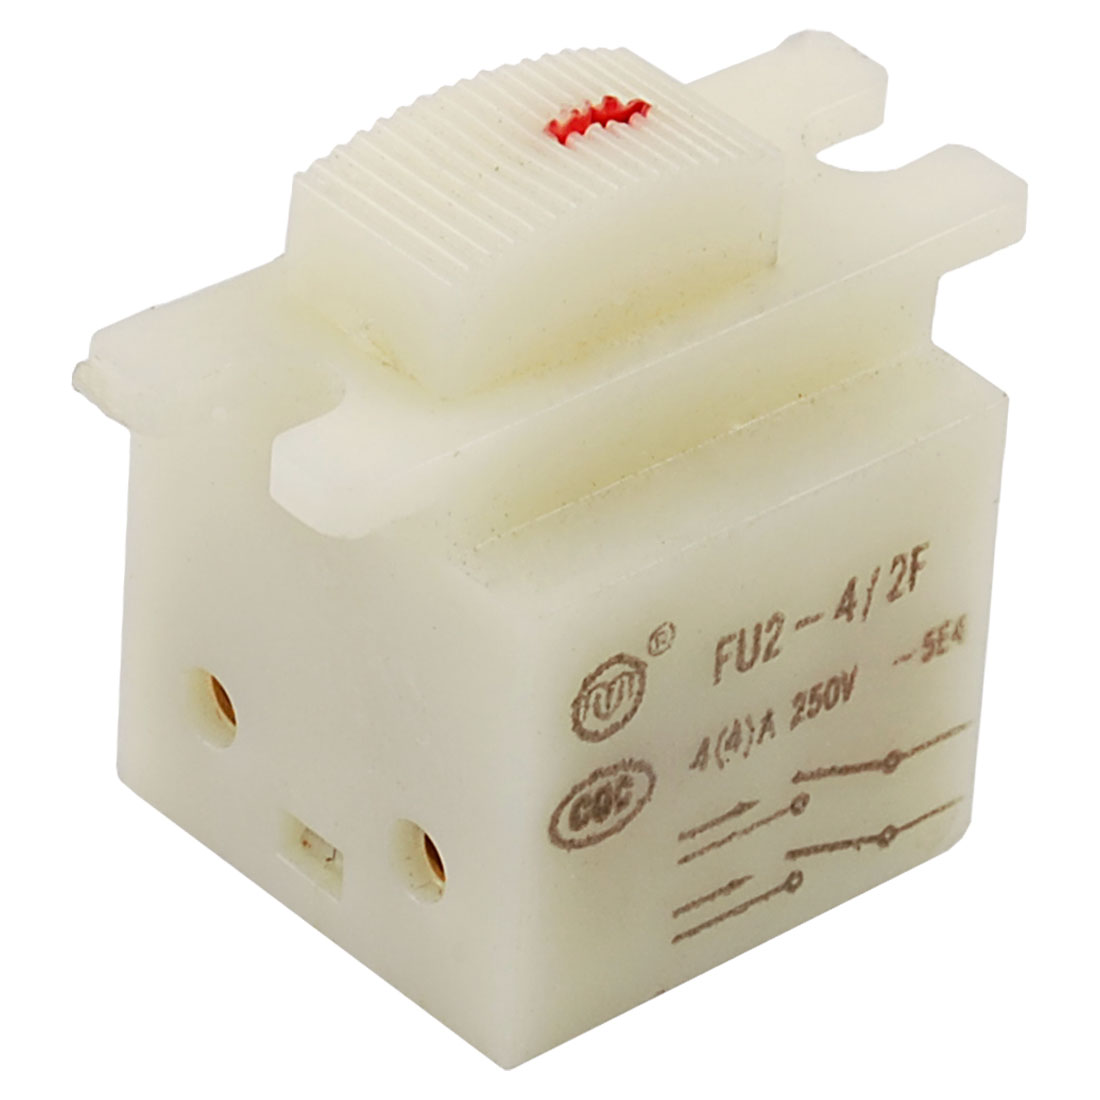 White 5E4 AC 250V 4A DPST ON-OFF Electric Grinder Power Tool Switch